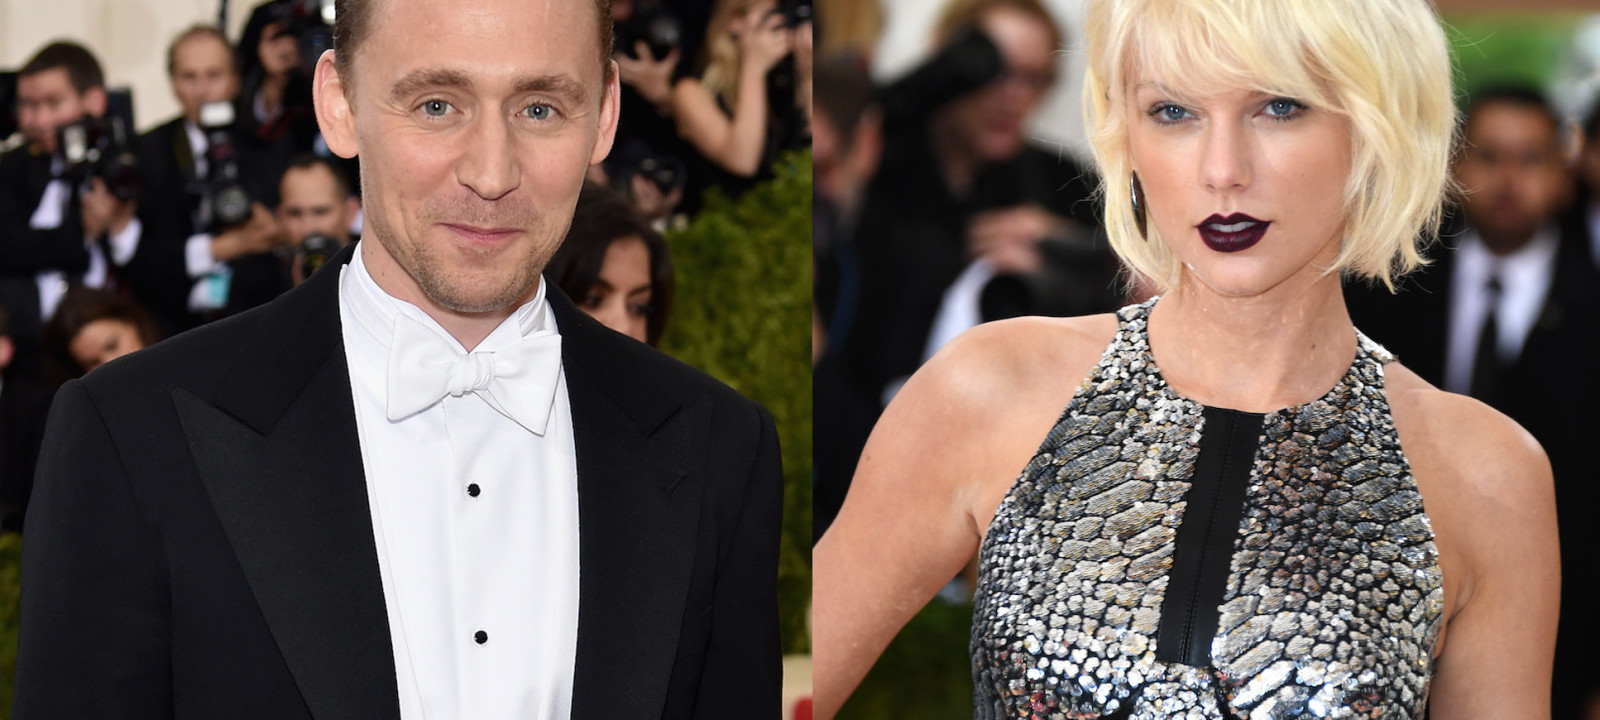 Tom Hiddleston and Taylor Swift arrive at the 2016 Met Gala